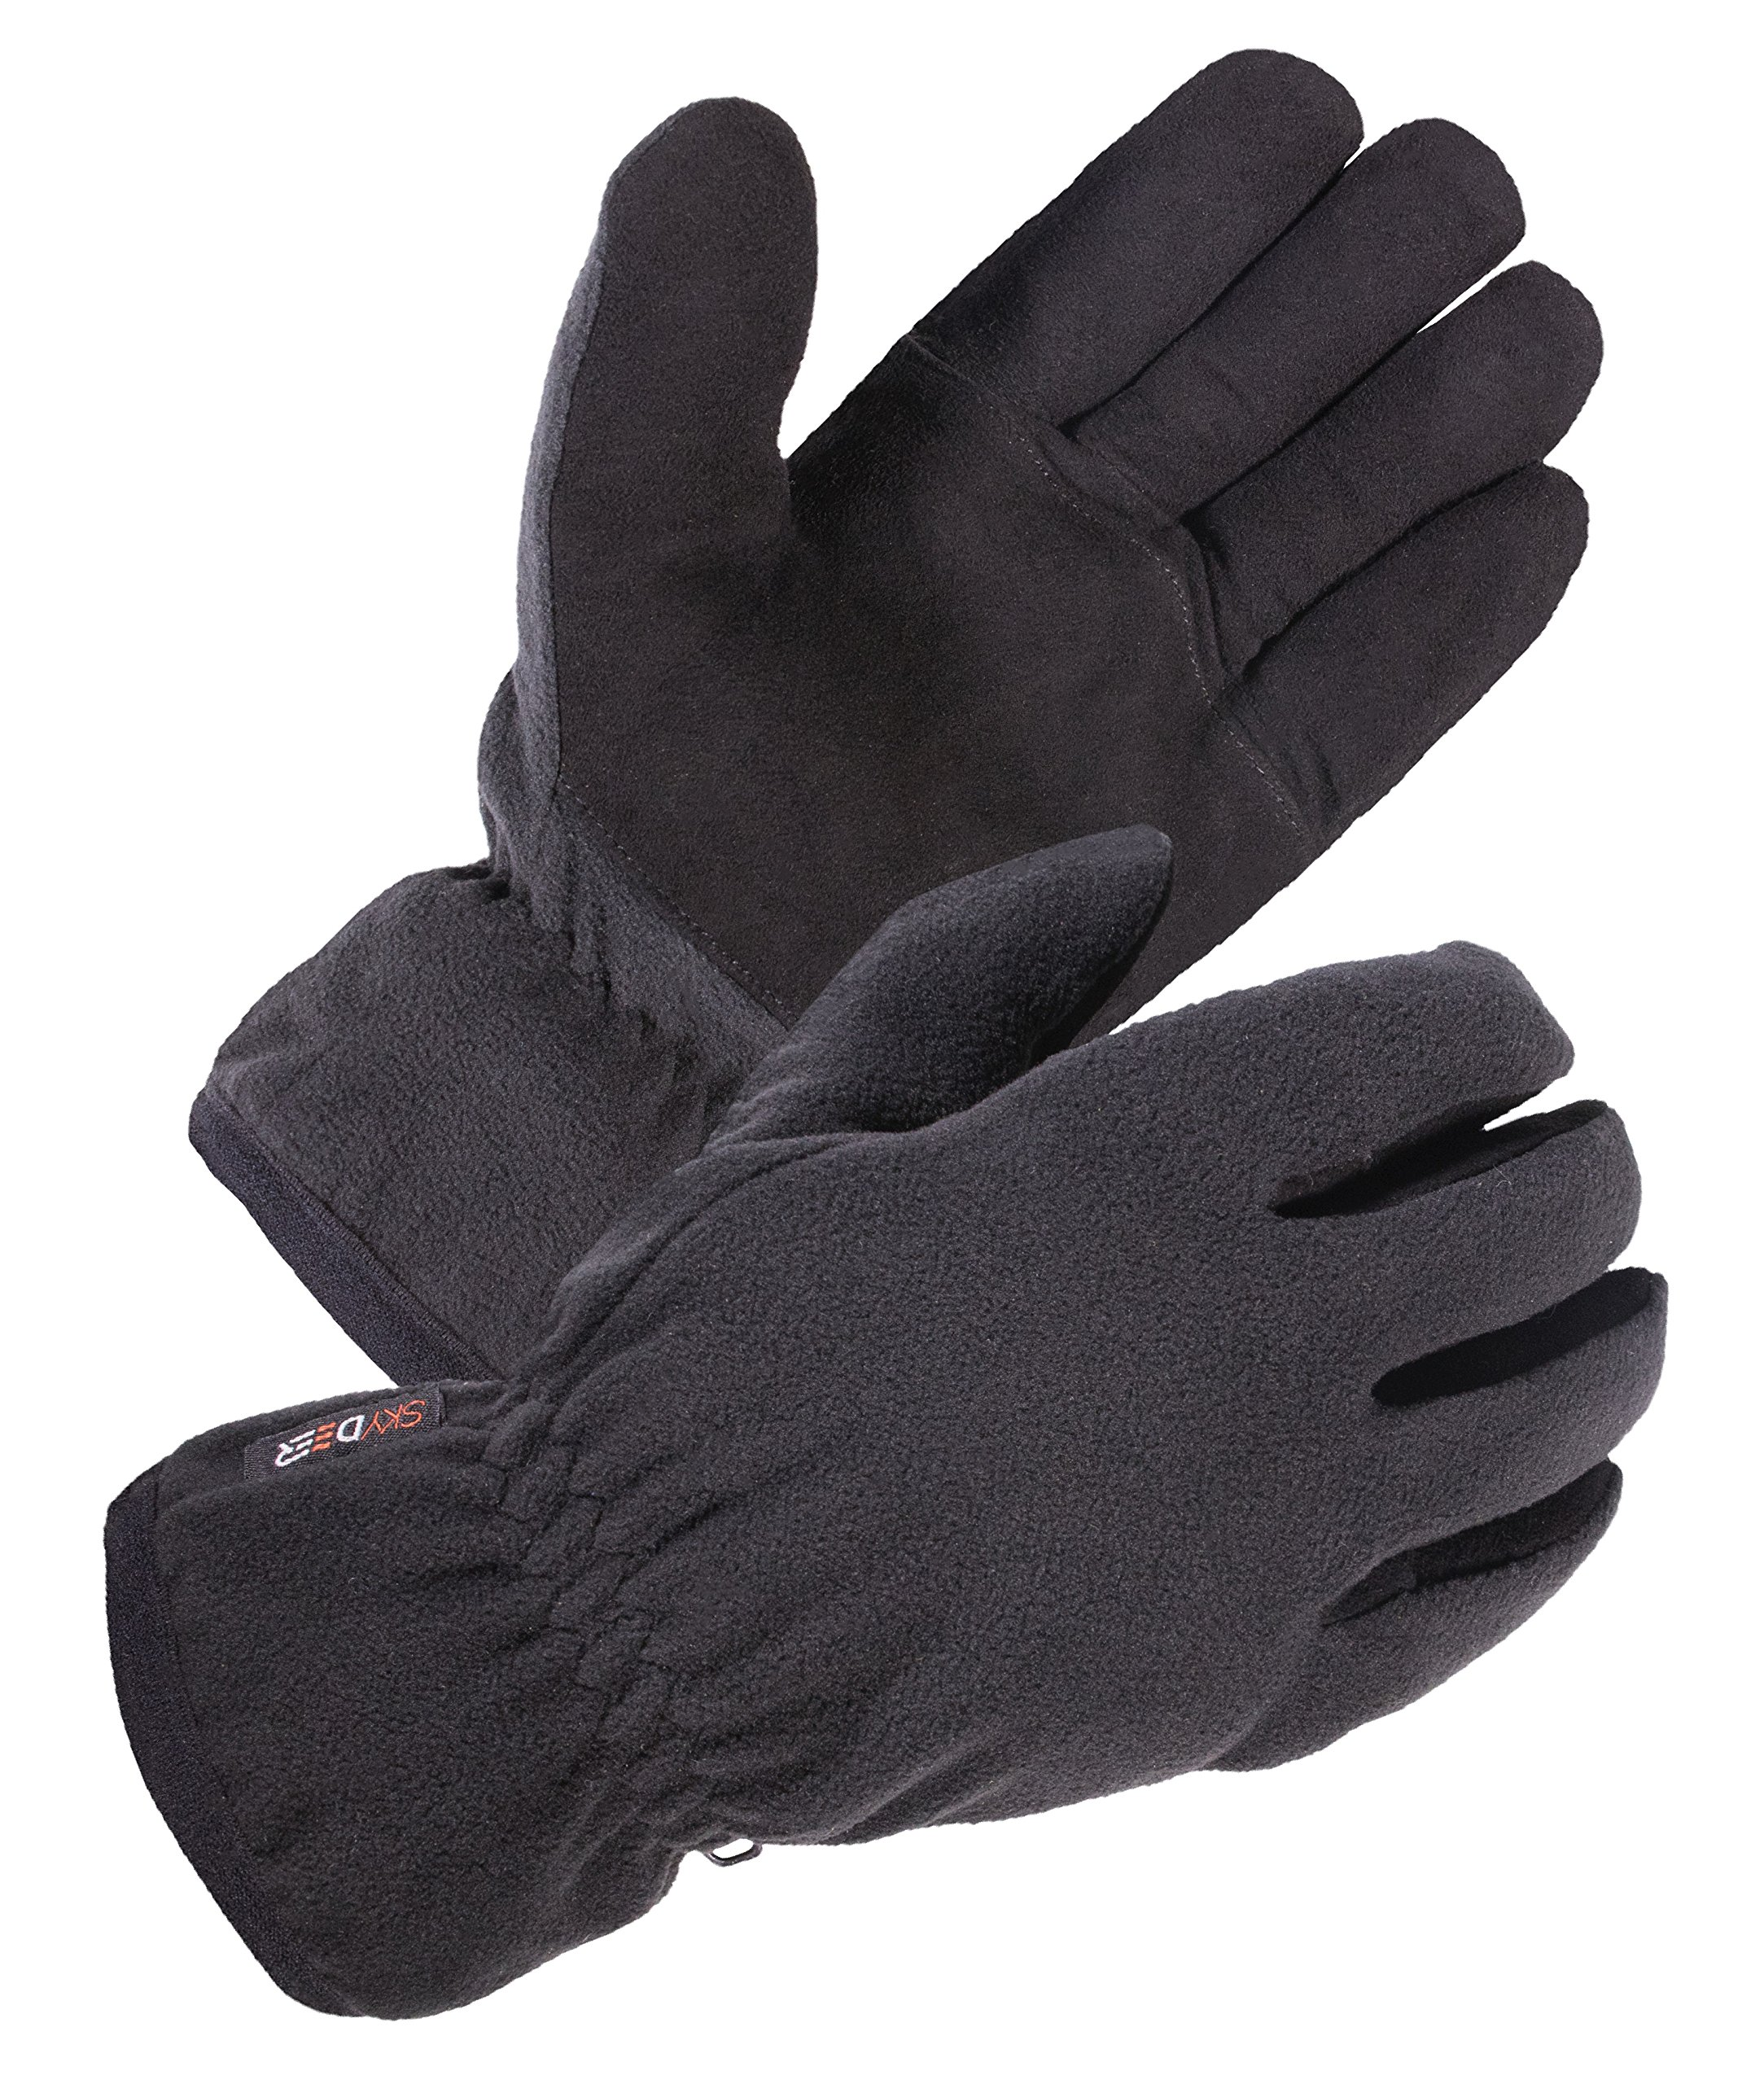 SKYDEER Winter Work Glove with Warm Deerskin Suede Leather and Thick Windproof Polar Fleece (SD8661T/S)